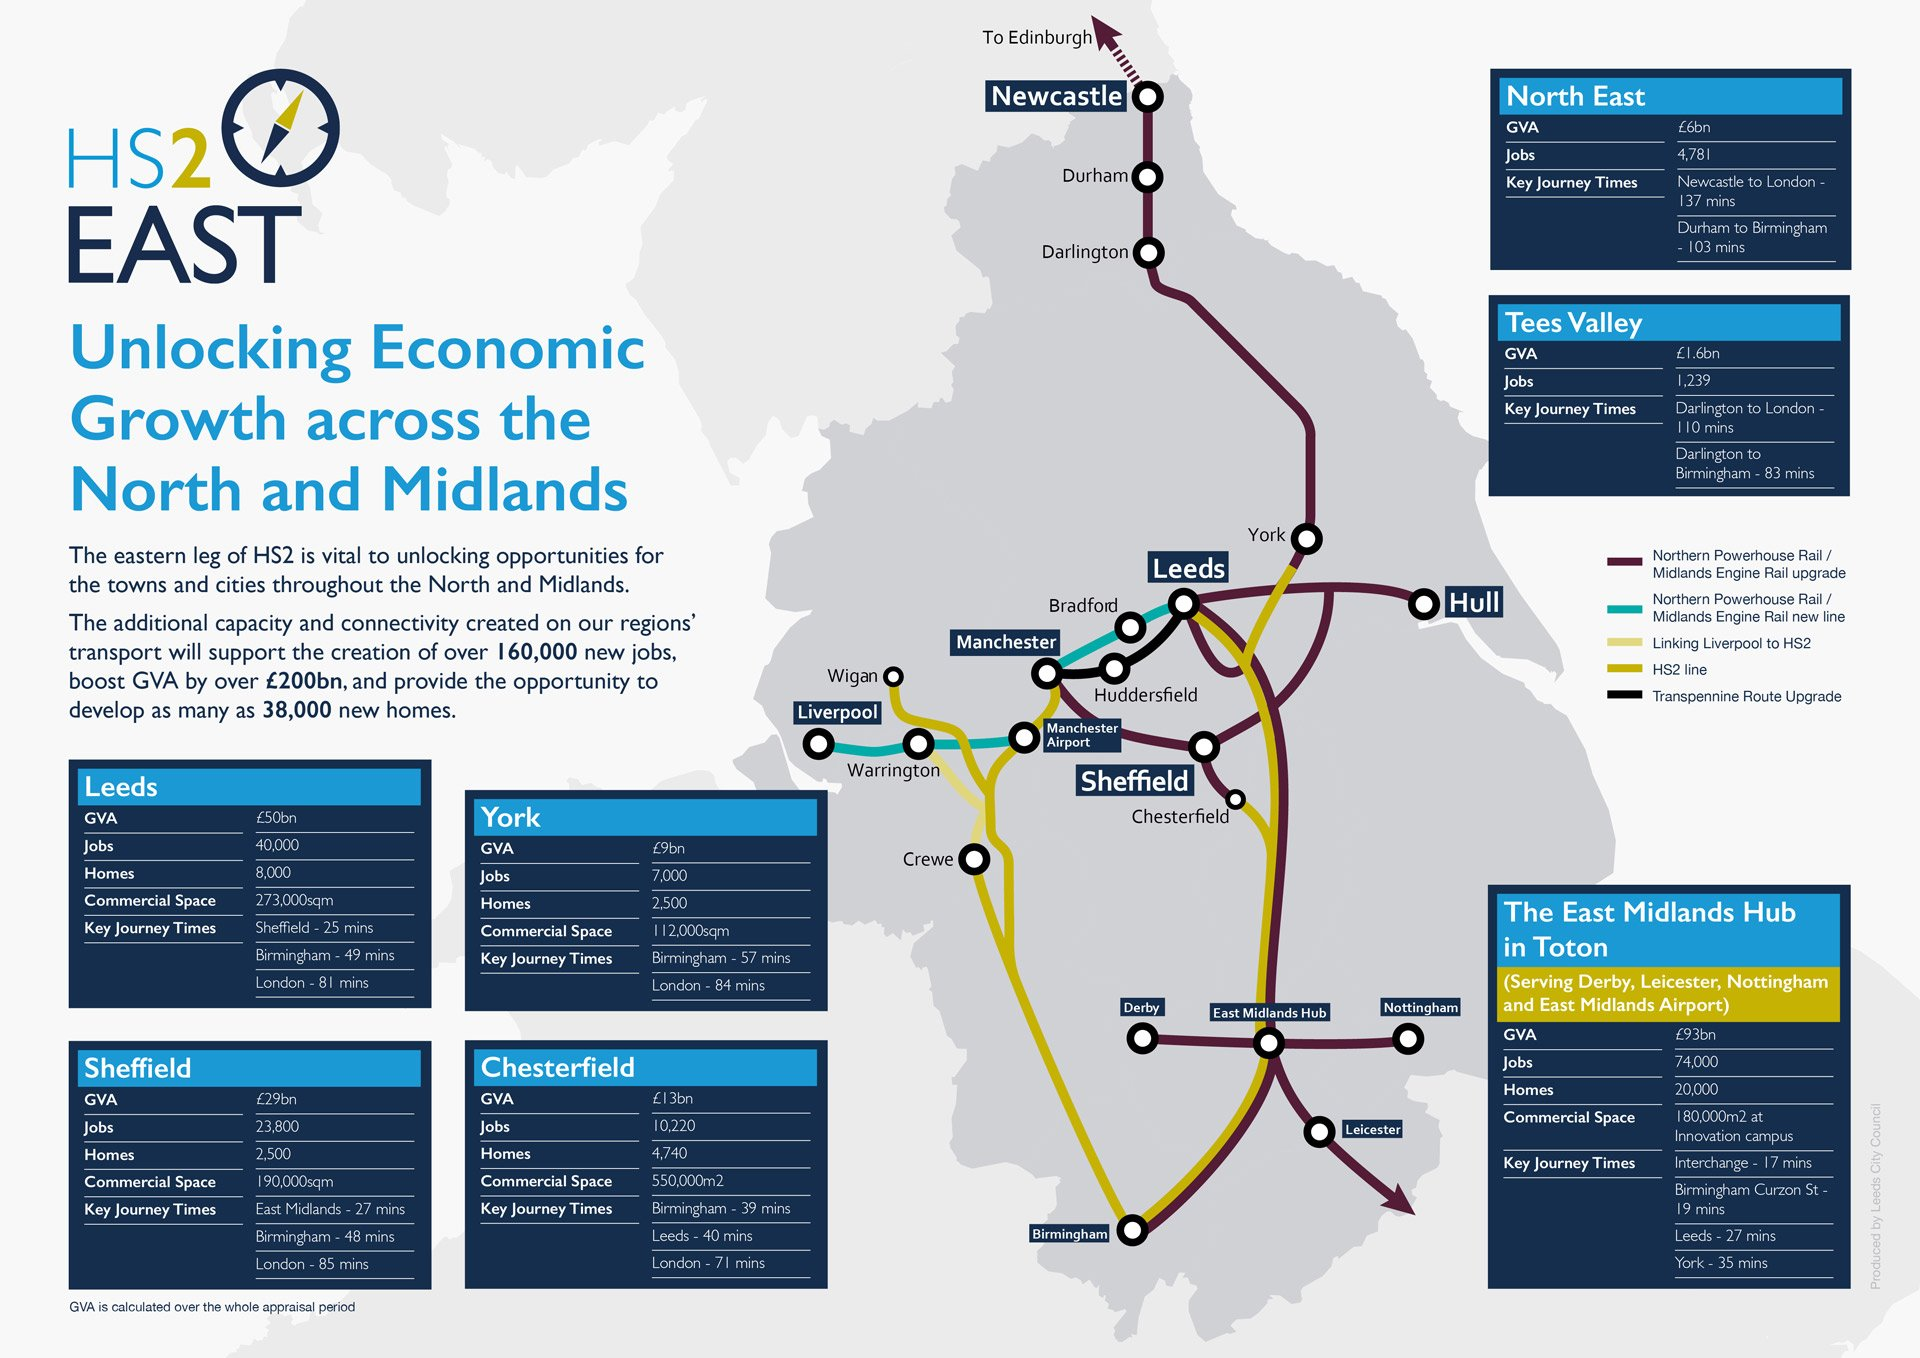 HS2 East map detail